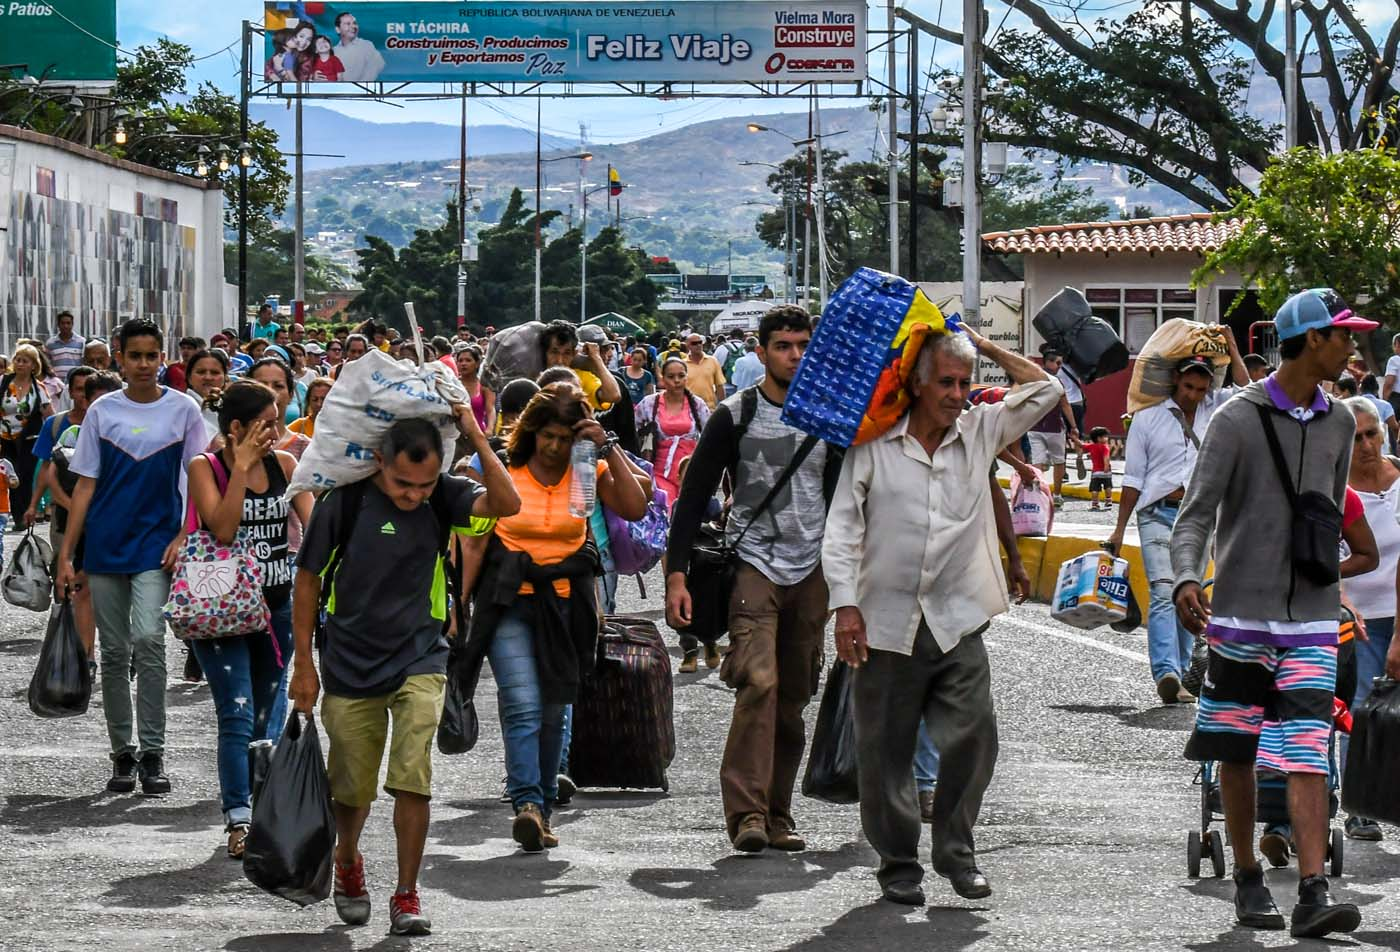 Venezuelan citizens cross the Simon Bolivar international bridge from San Antonio del Tachira, Venezuela to Cucuta, Norte de Santander Department, Colombia, on July 25, 2017. Some 25.000 Venezuelans cross to Colombia and return to their country daily with food, consumables and money from ilegal work, according to official sources. Also, there are 47.000 Venezuelans in Colombia with legal migratory status and another 150.000 who have already completed the 90 allowed days and are now without visa. / AFP PHOTO / Luis Acosta